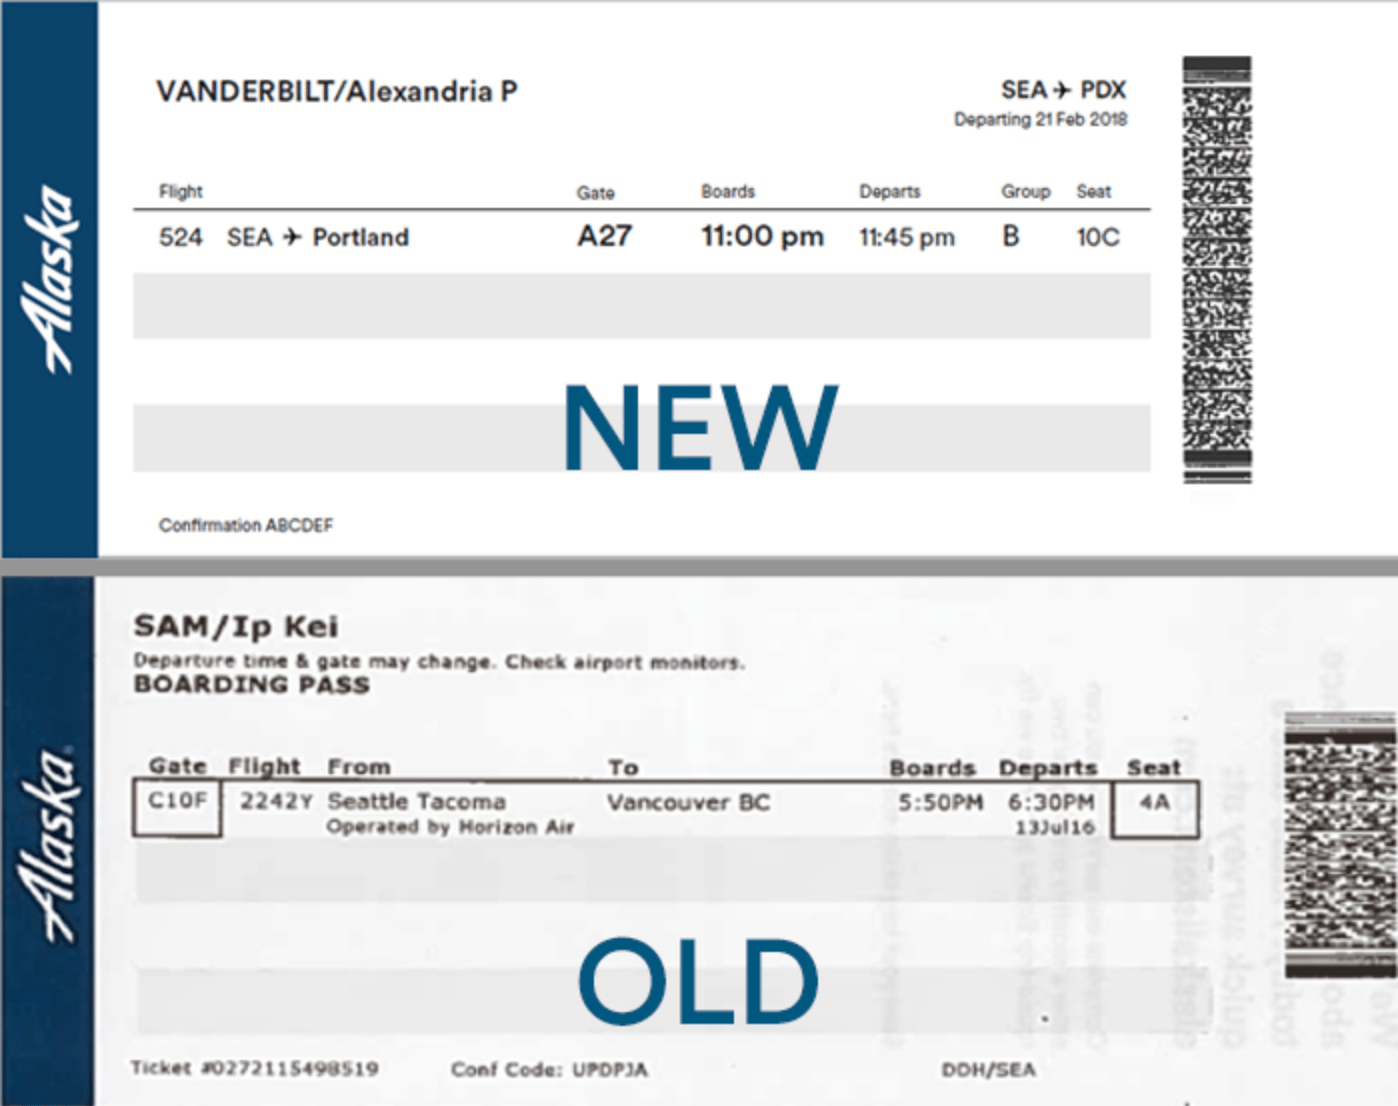 New Alaska boarding pass compared to old